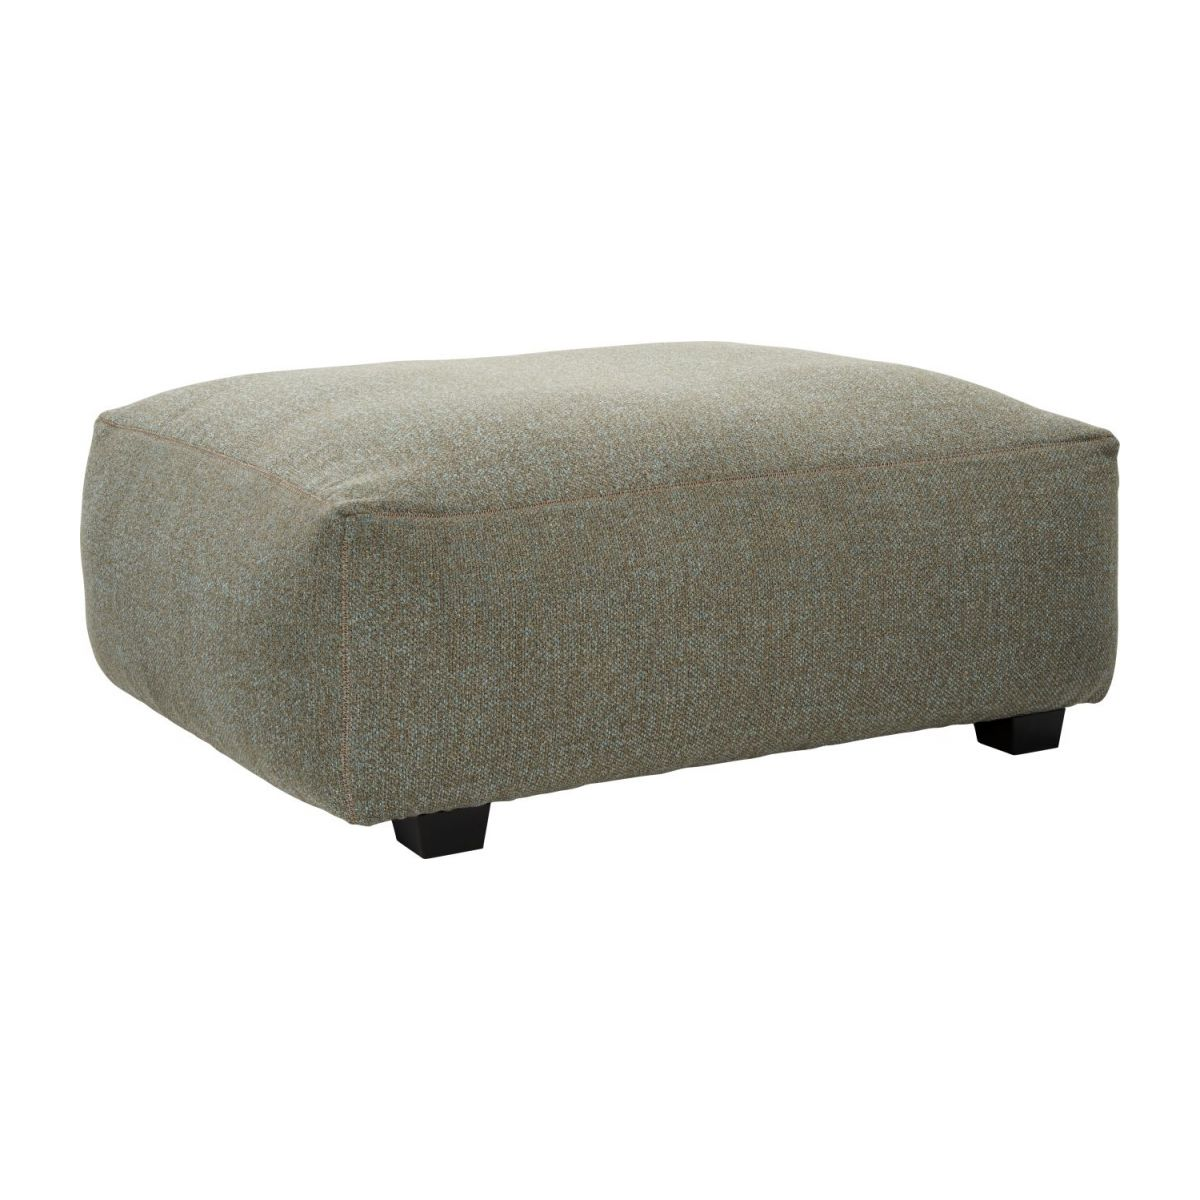 Footstool in Lecce fabric, slade grey n°1